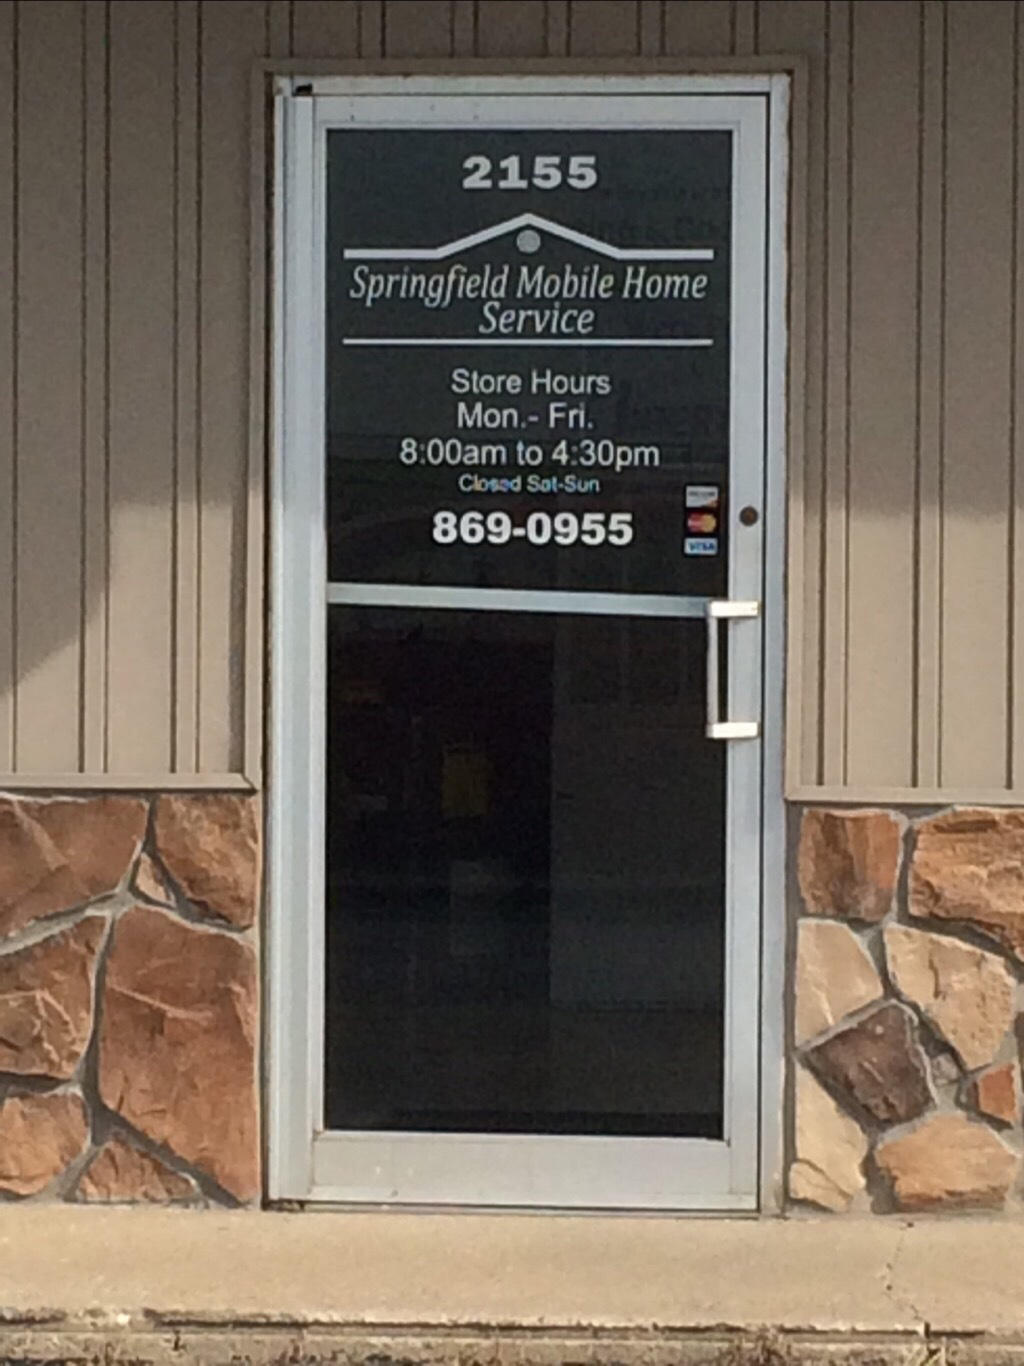 Springfield Mobile Home Service image 6